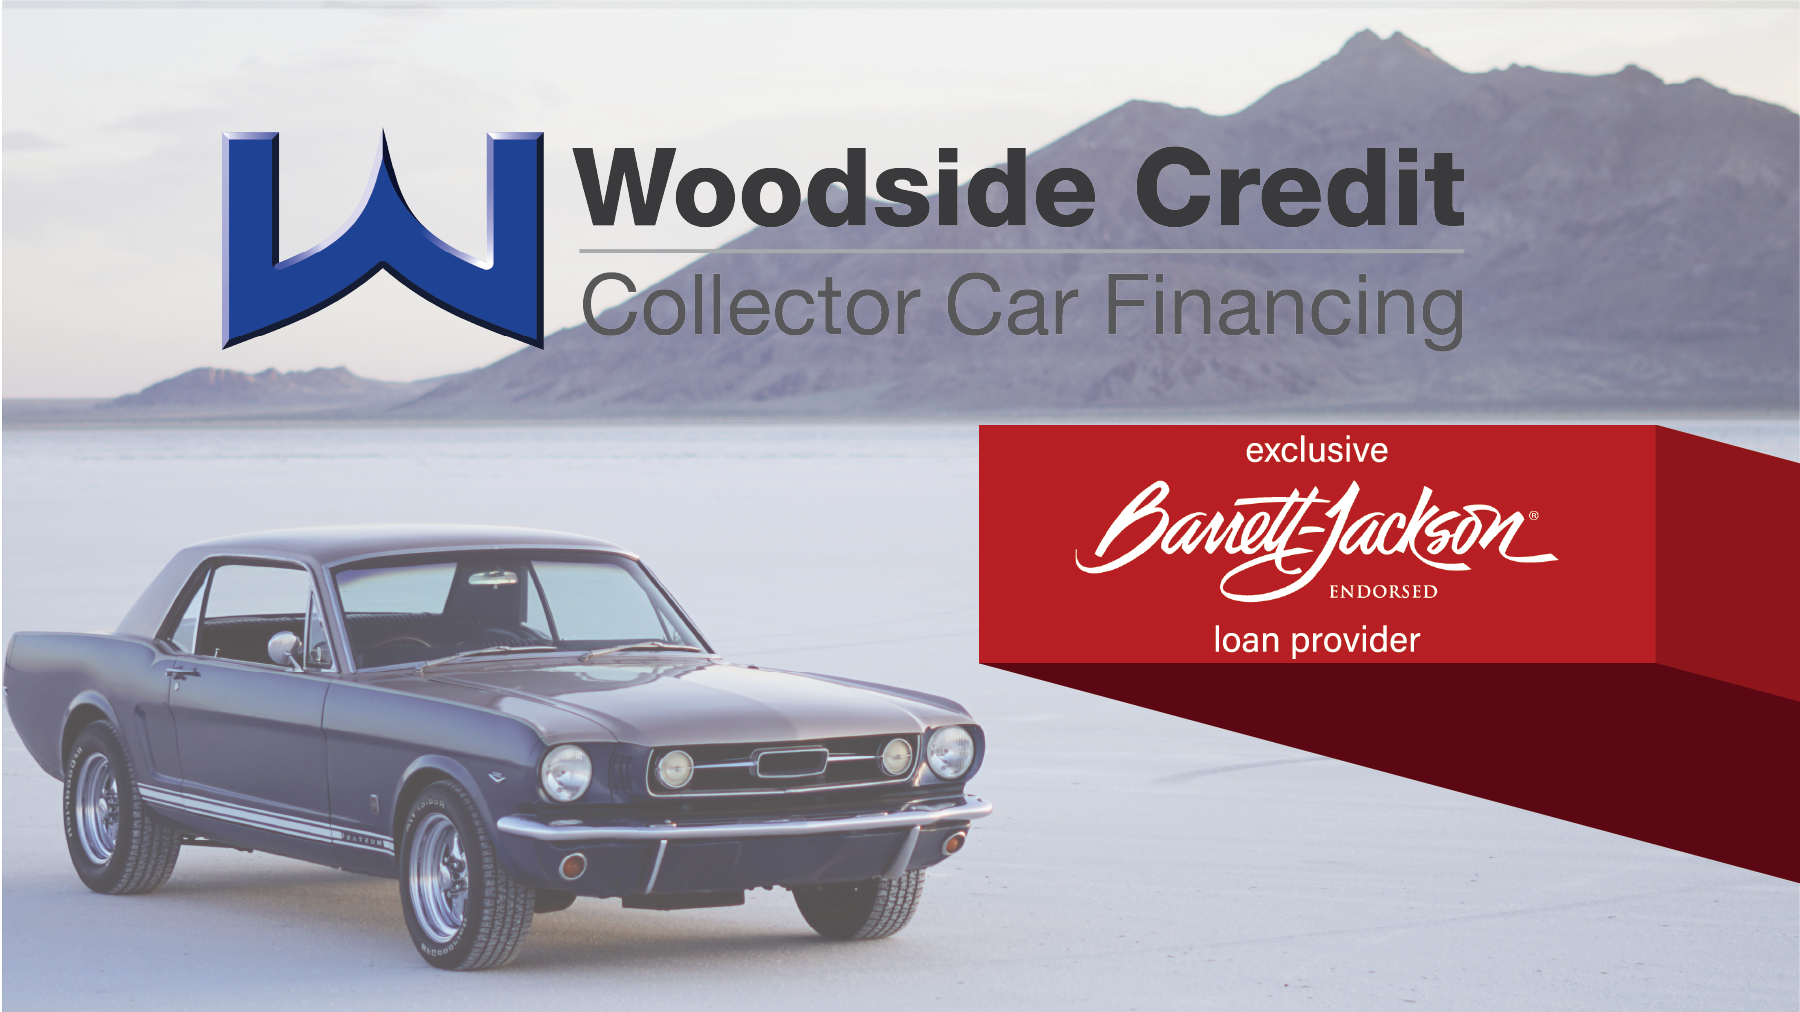 Woodside Credit Signs 4-Year Exclusive Endorsement as Barrett-Jackson's Collector Car Loan Provider